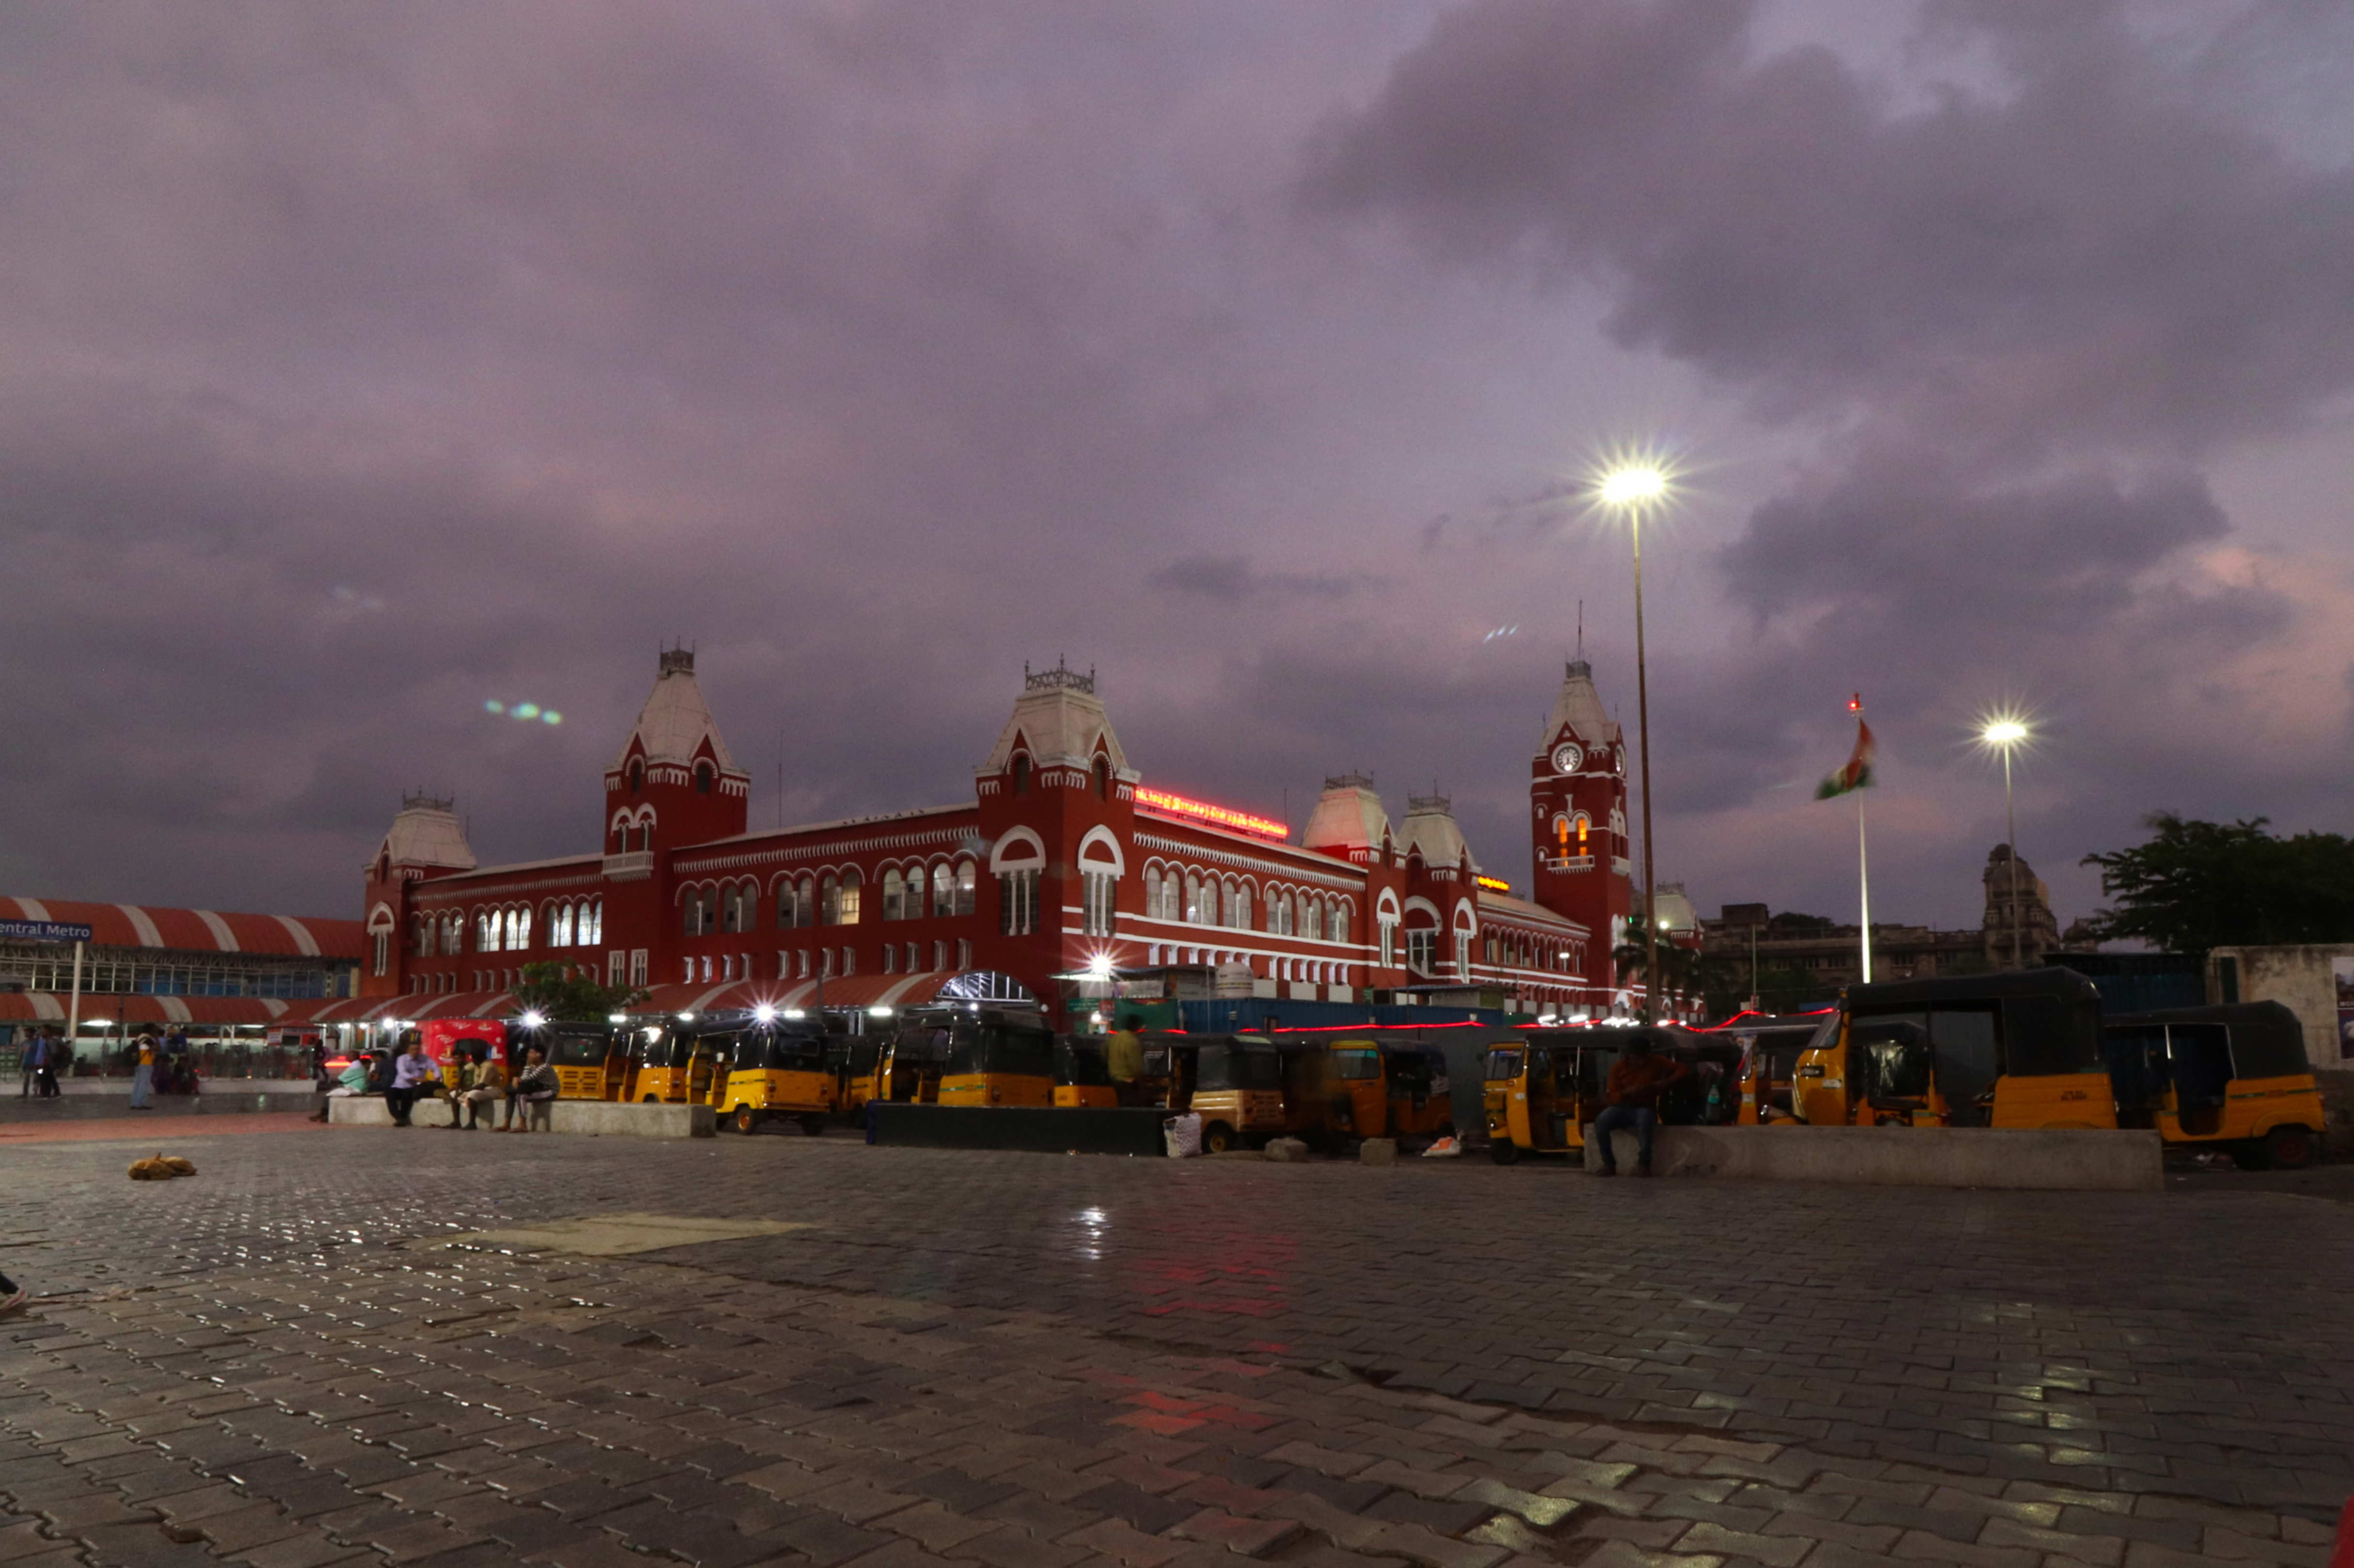 Namma Central Railway Station